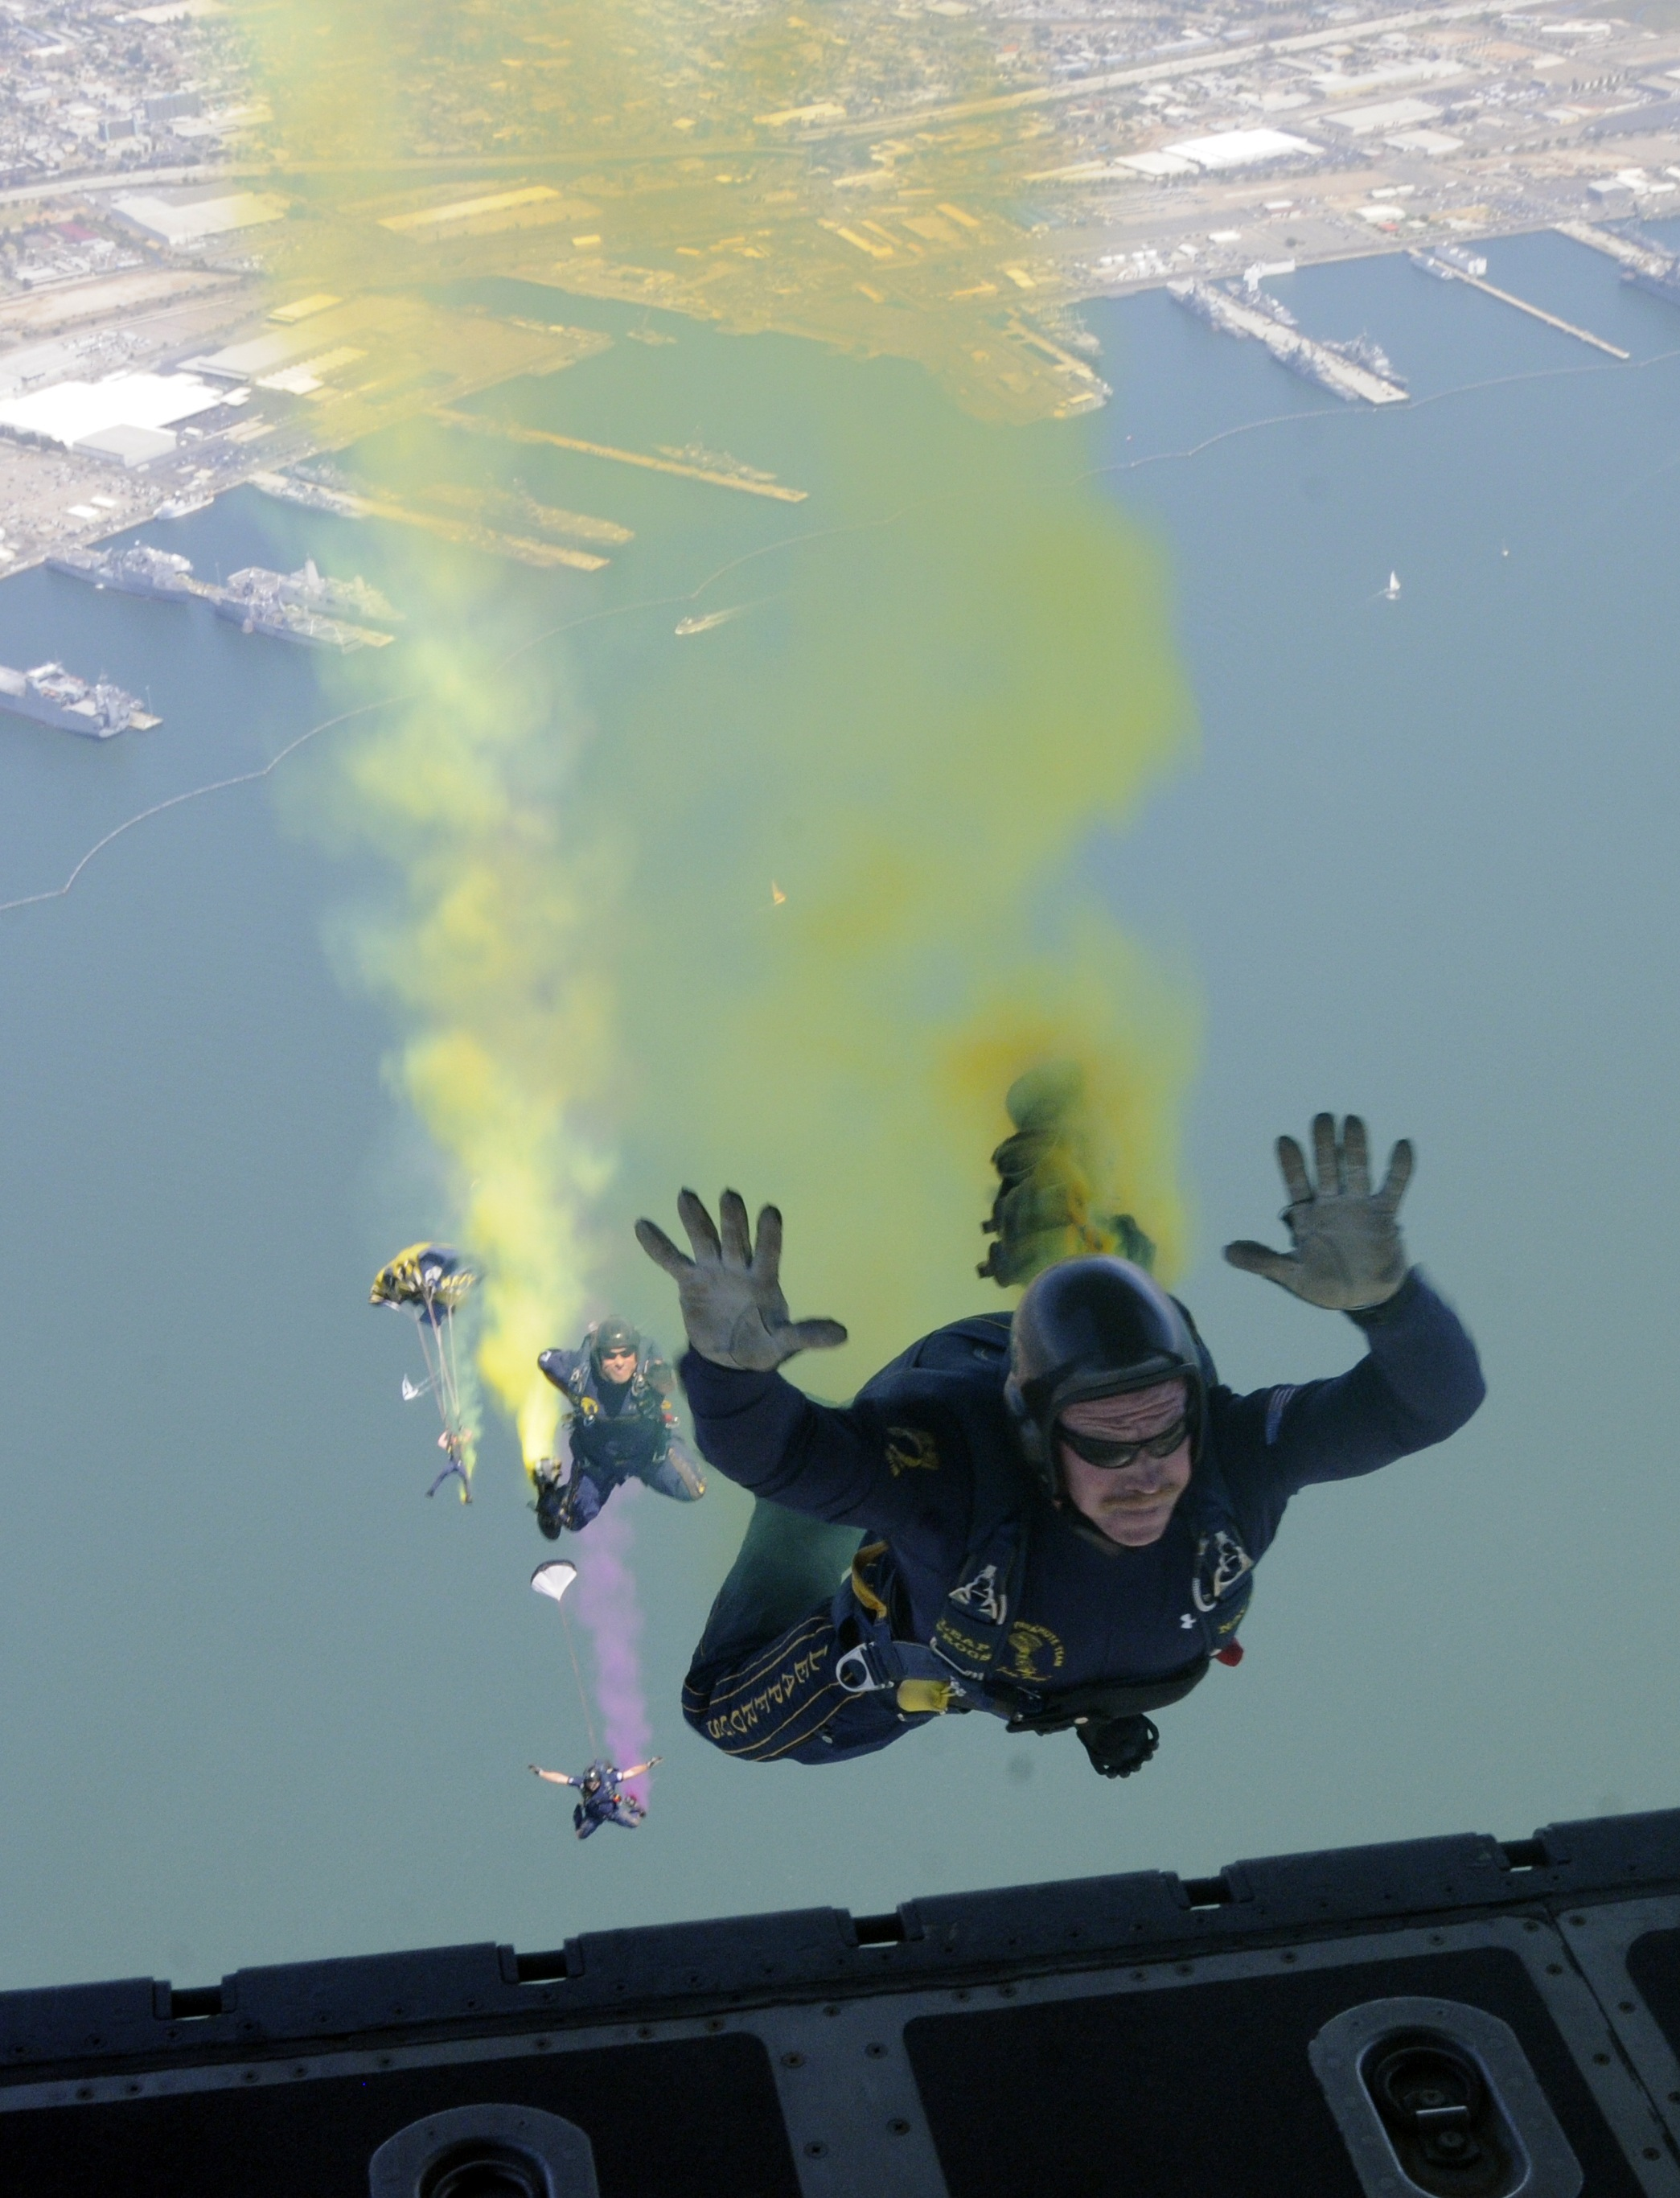 Colorful skydiving photo